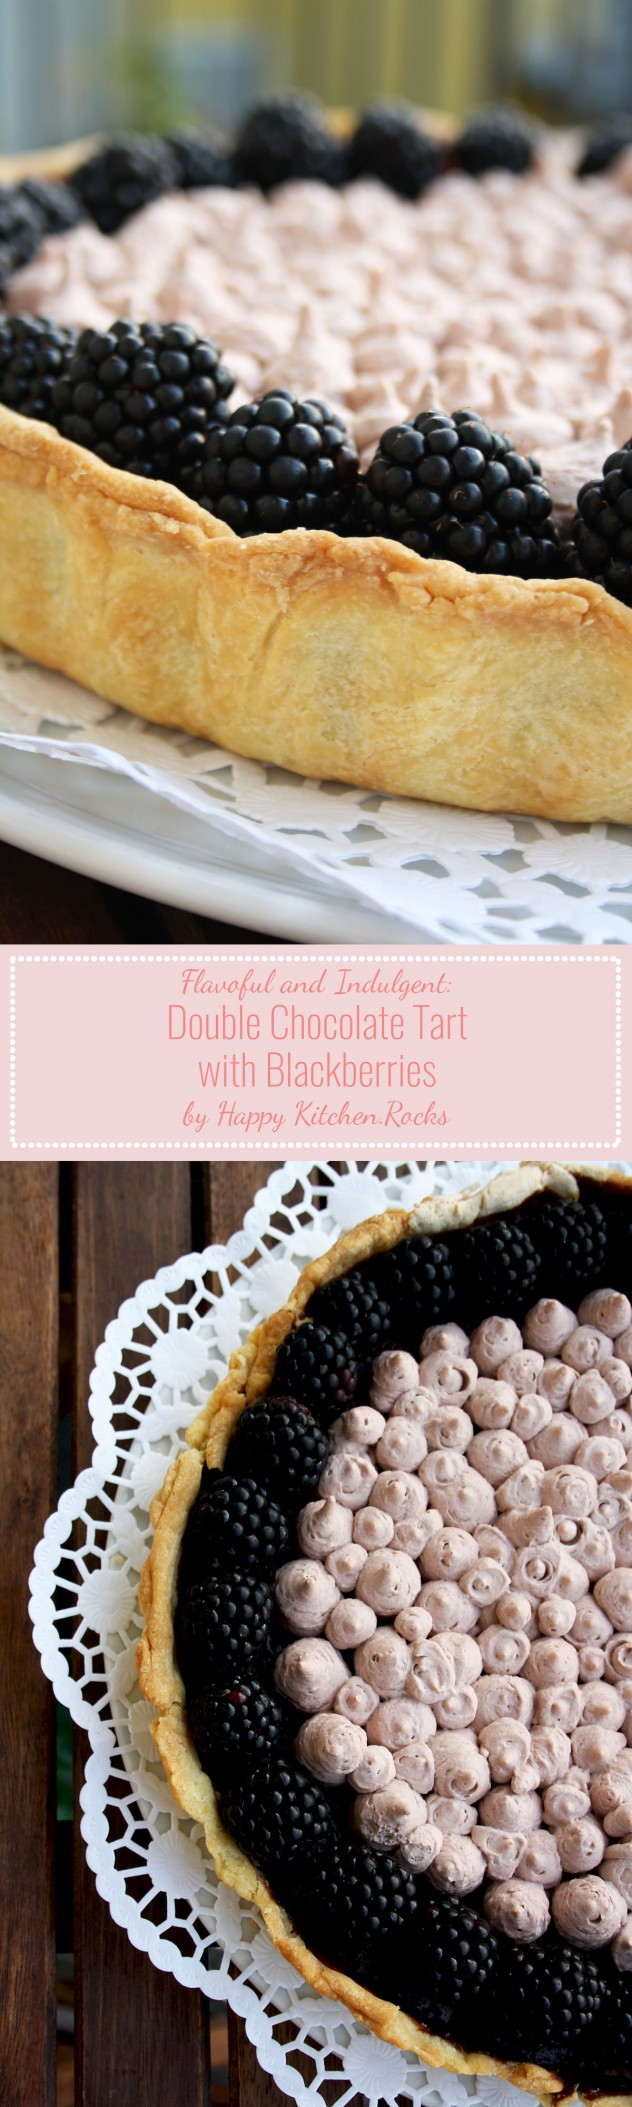 Double Chocolate Tart with Blackberries Recipe: extremely rich, flavorful, indulgent and intensely chocolaty dessert for special occasions.